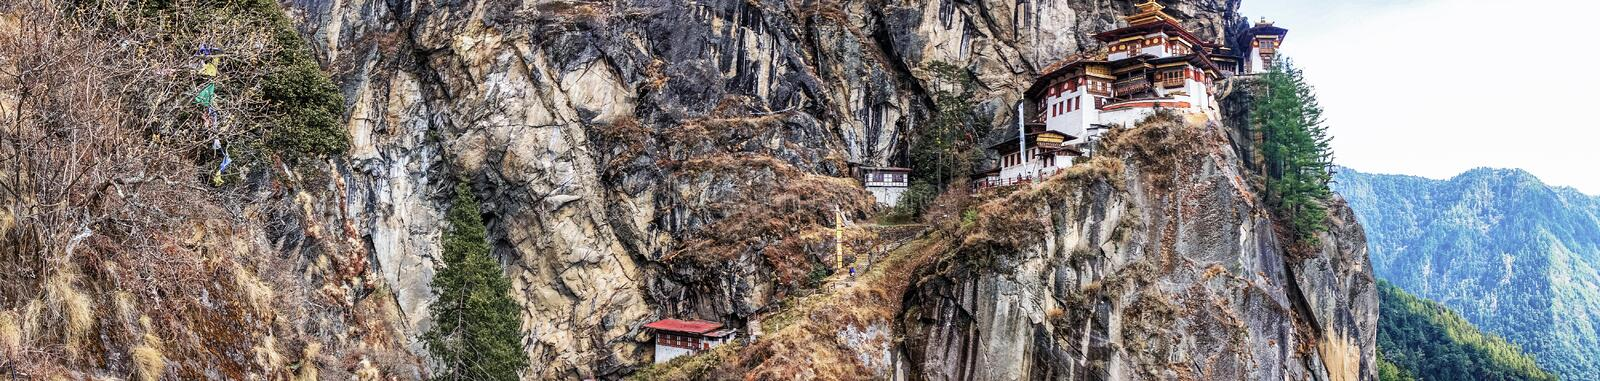 Taktshang Goemba or Tiger's nest Temple on mountain in Panorama view. Taktshang Goemba or Tiger's nest Temple or Tiger's nest monastery the most beautiful stock images